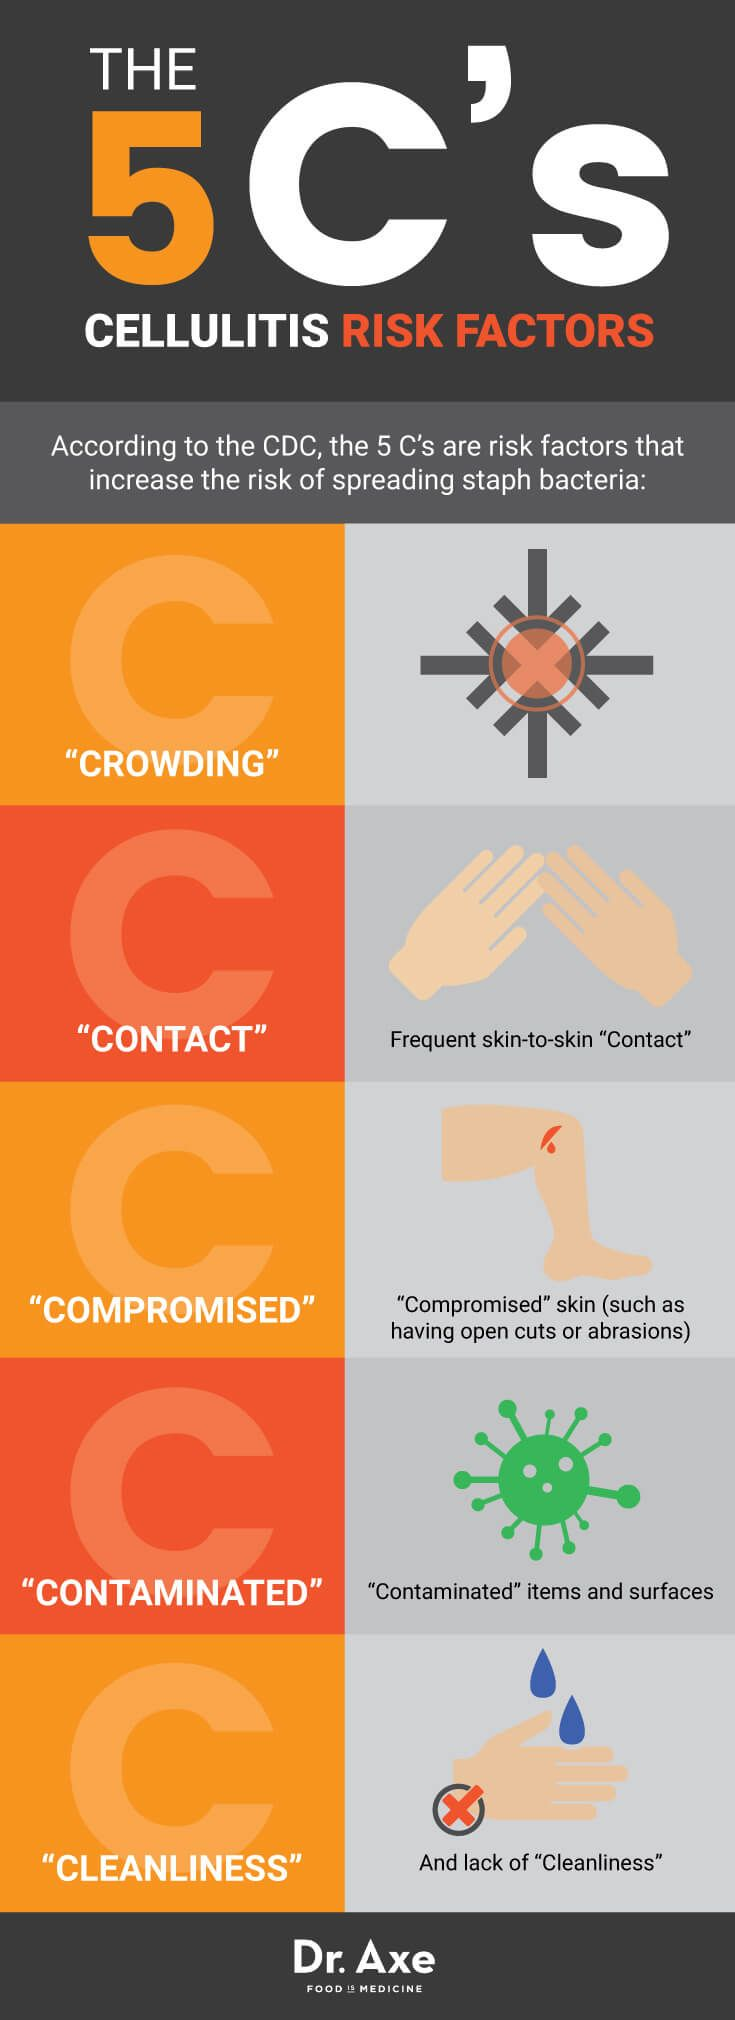 The 5 C's of cellulitis risk factors - Dr. Axe http://www.draxe.com #health #holistic #natural